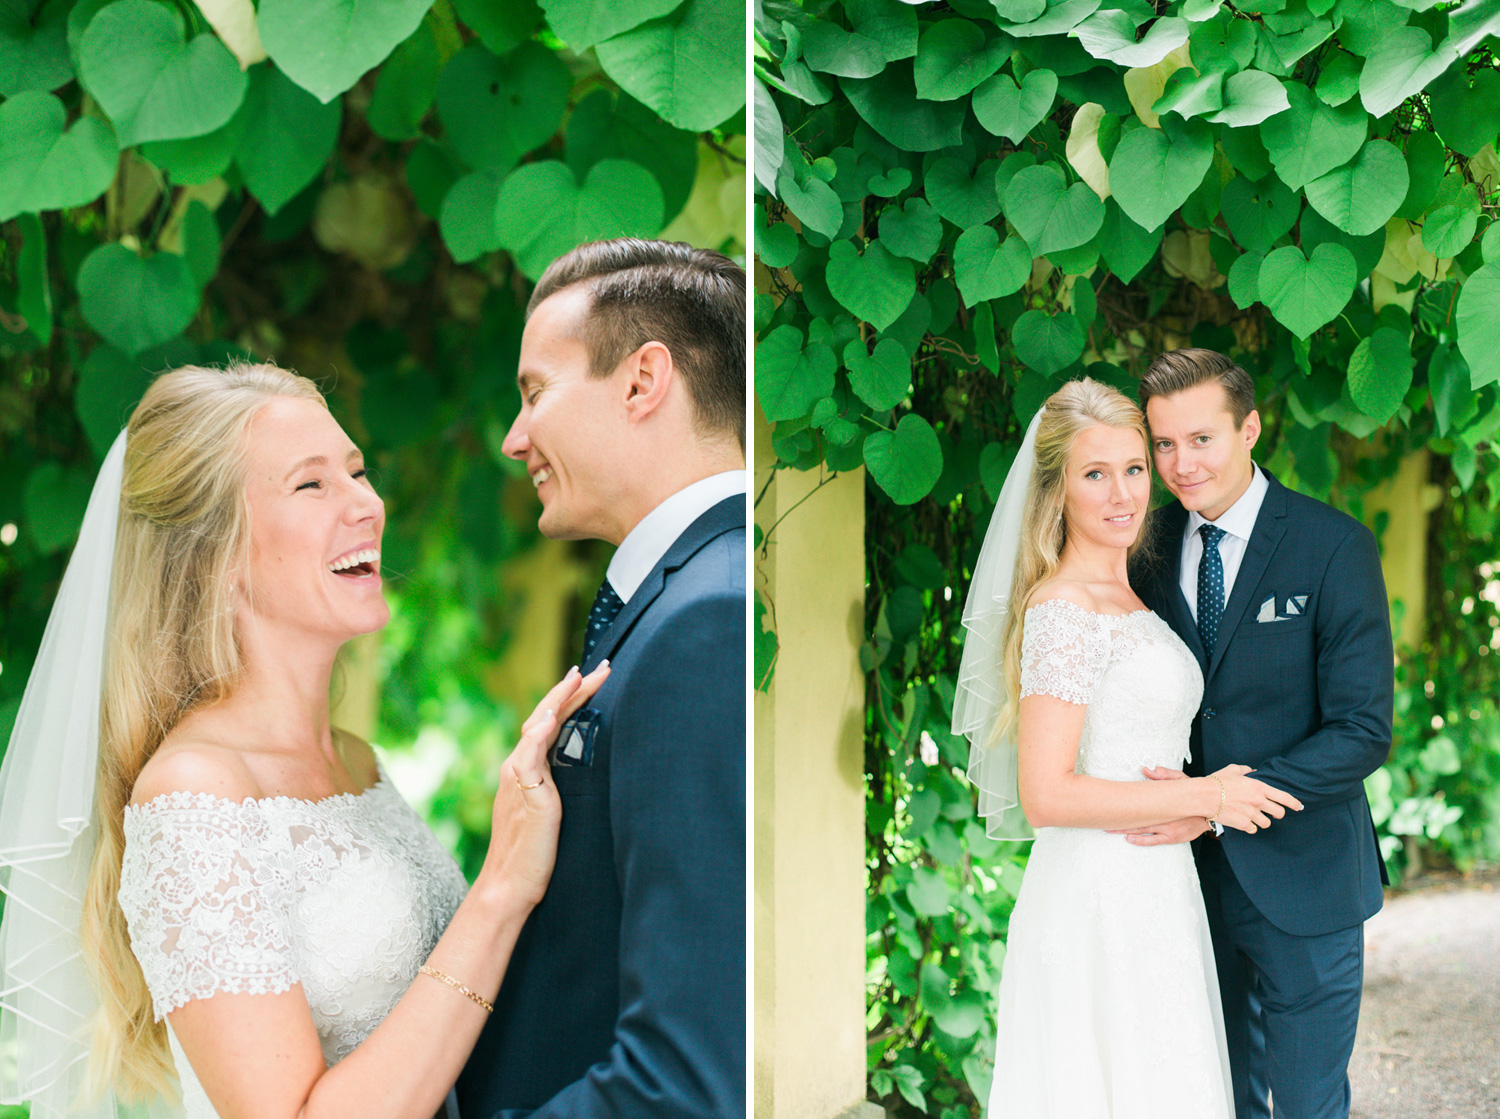 024-sweden-vidbynäs-wedding-photographer-bröllopsfotograf.jpg